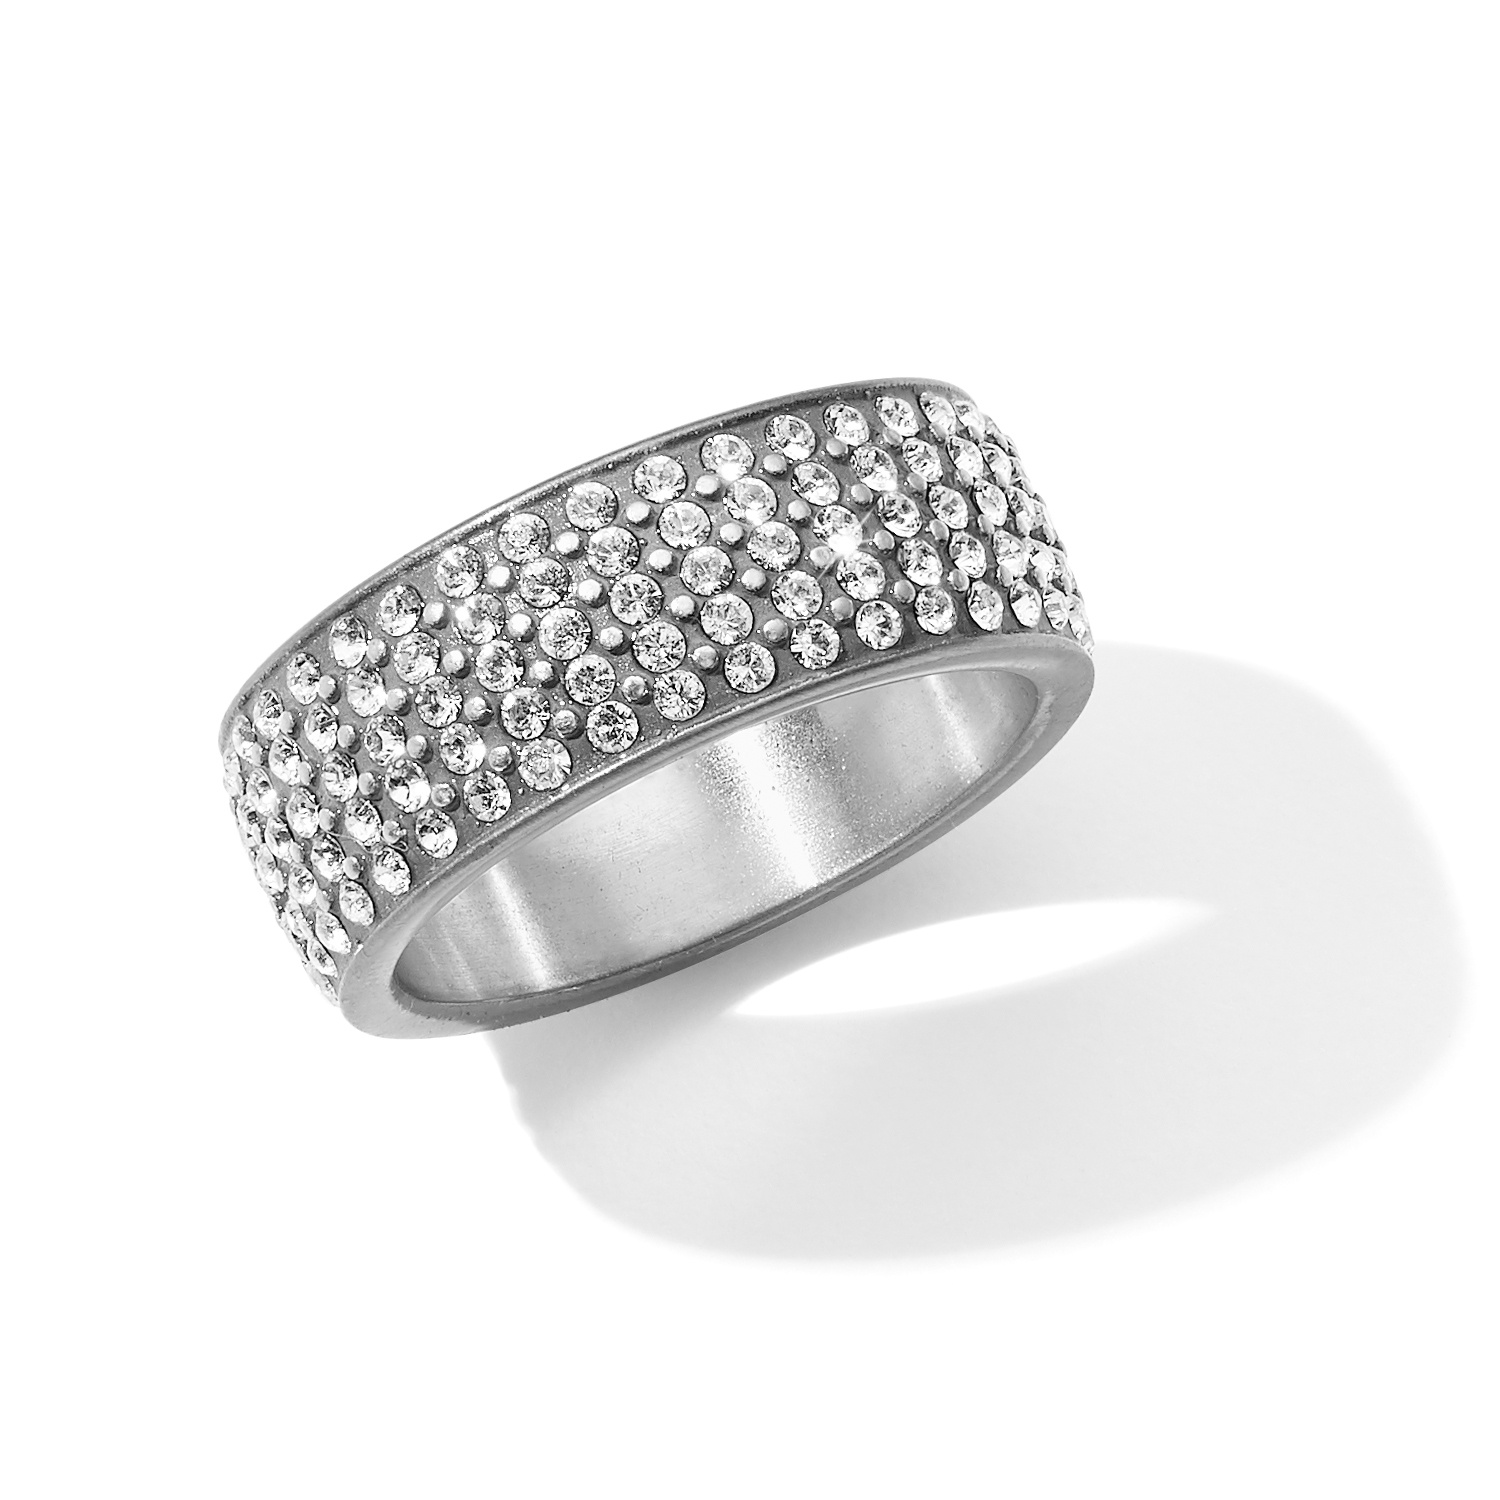 Rings - Brighton Silver Fashion Jewelry Rings for Women